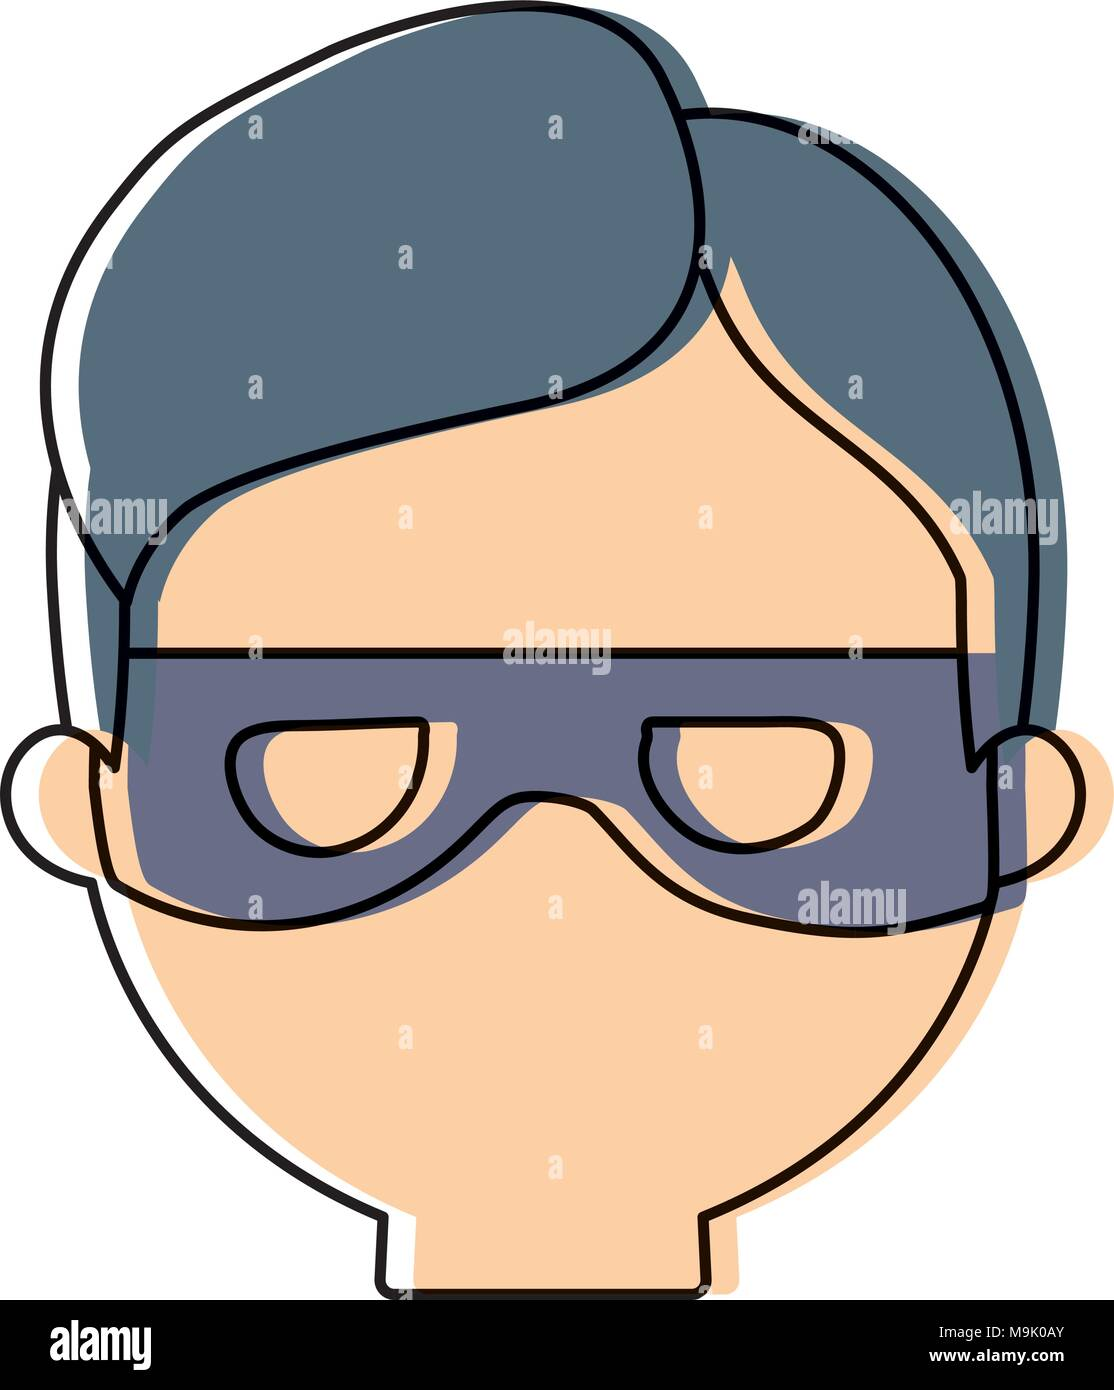 cartoon thief face icon over white background, colorful design. vector illustration Stock Vector